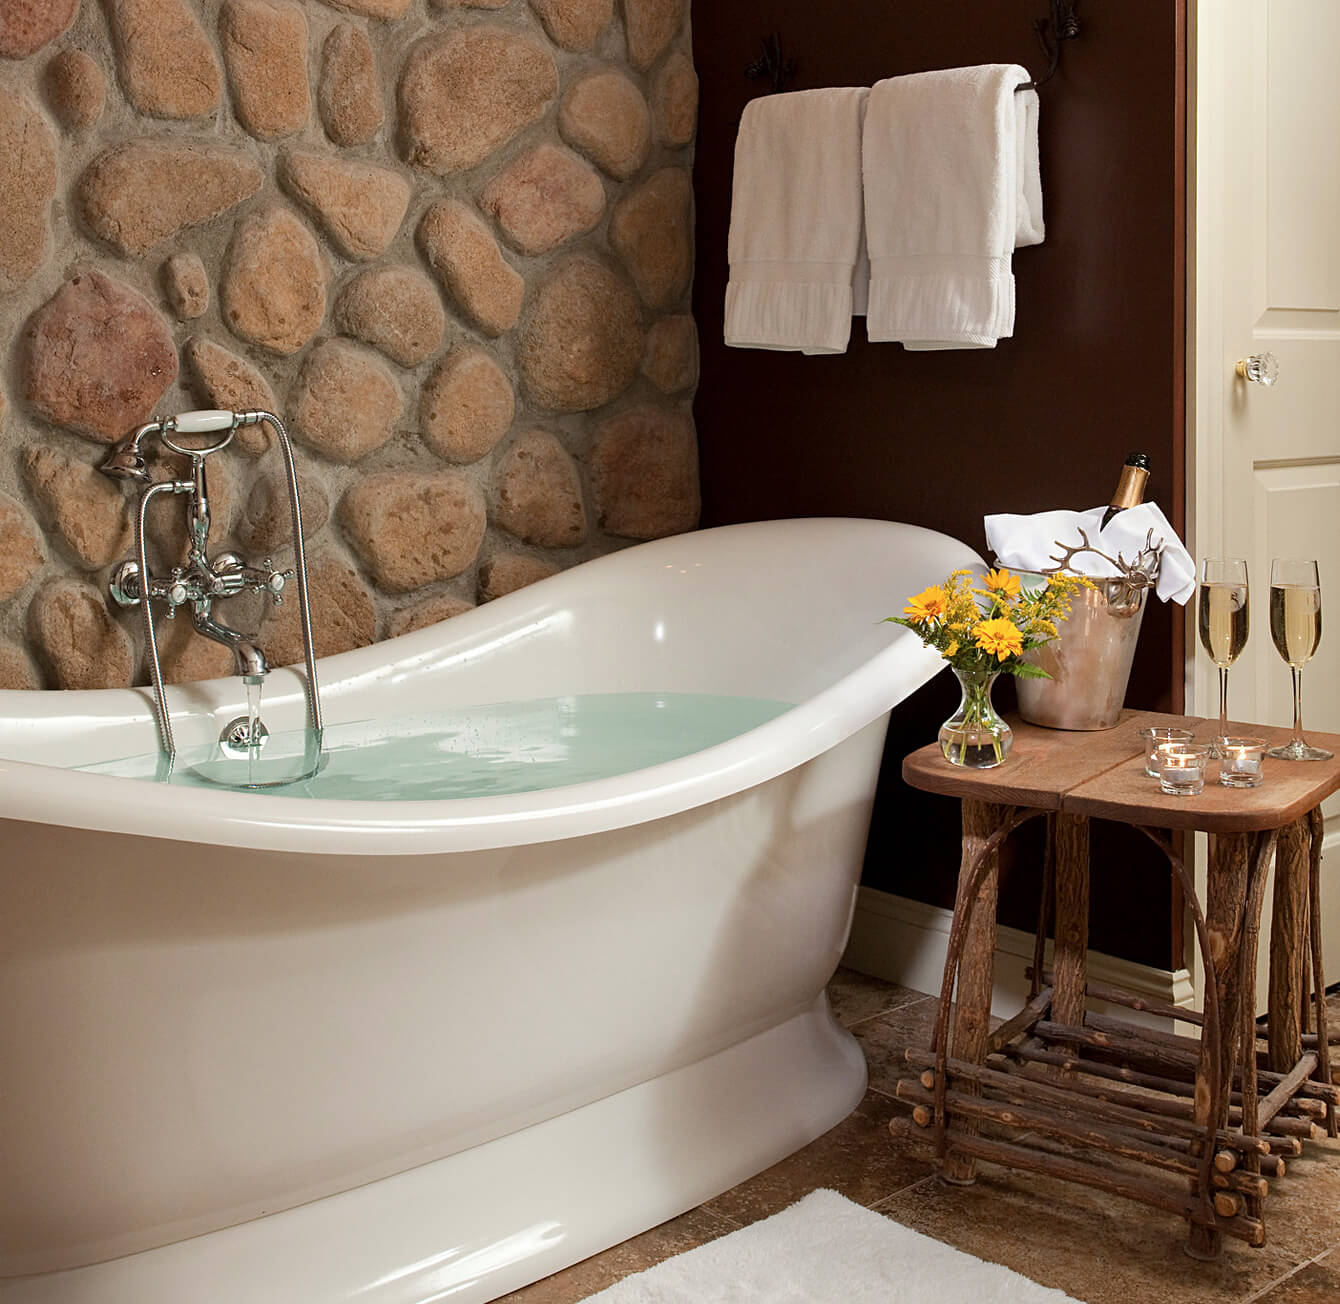 Stone wall with soaking tub and Champagne